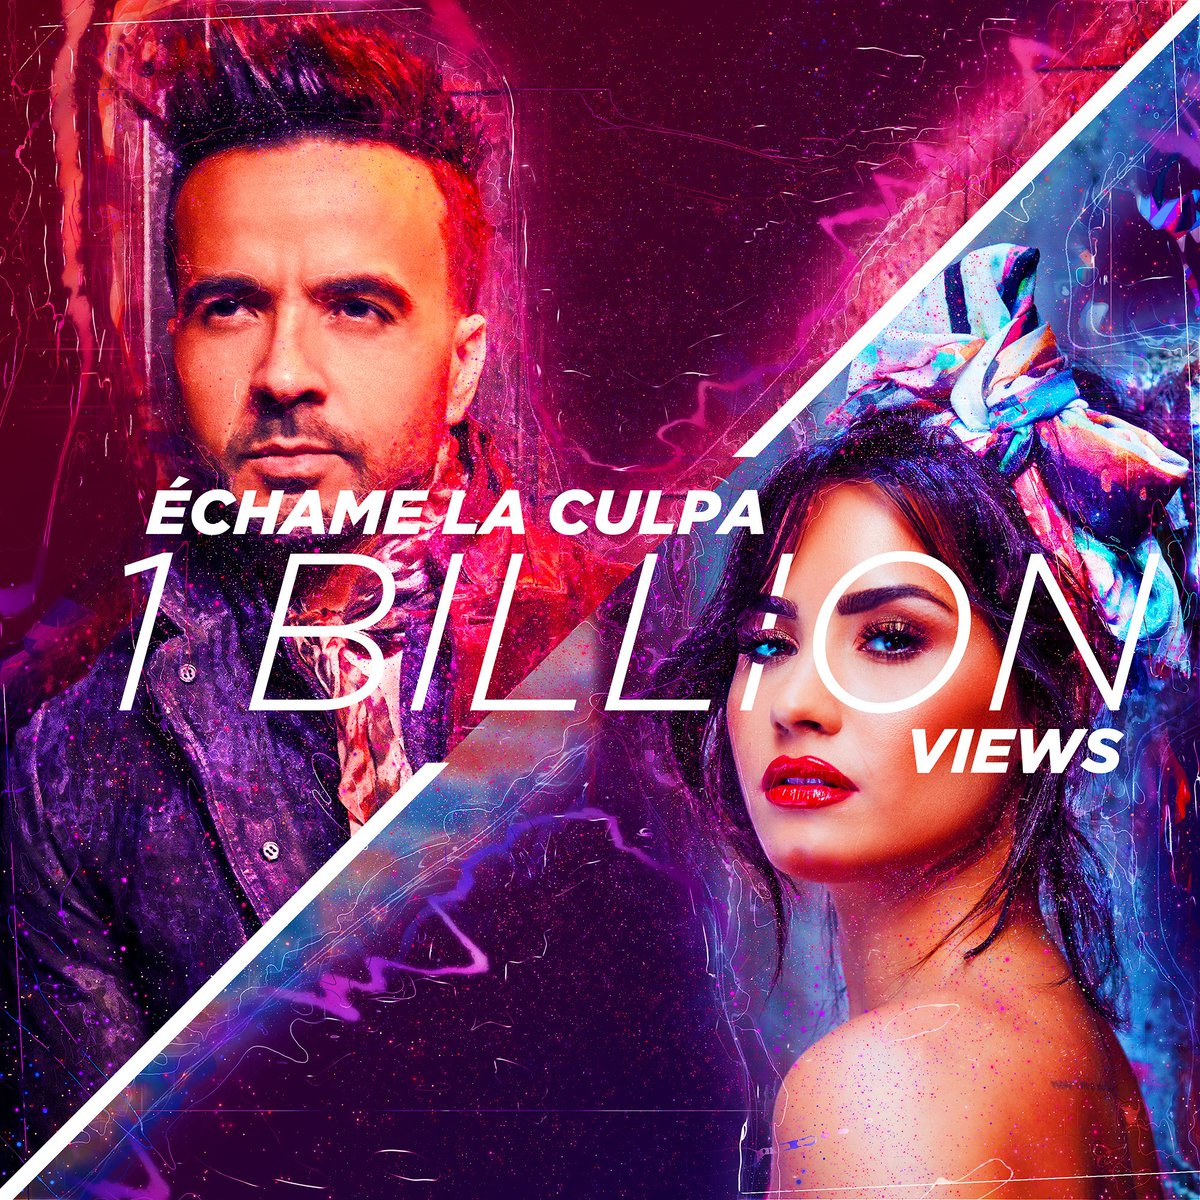 Luis Fonsi & Demi Lovato Reach 1B Views